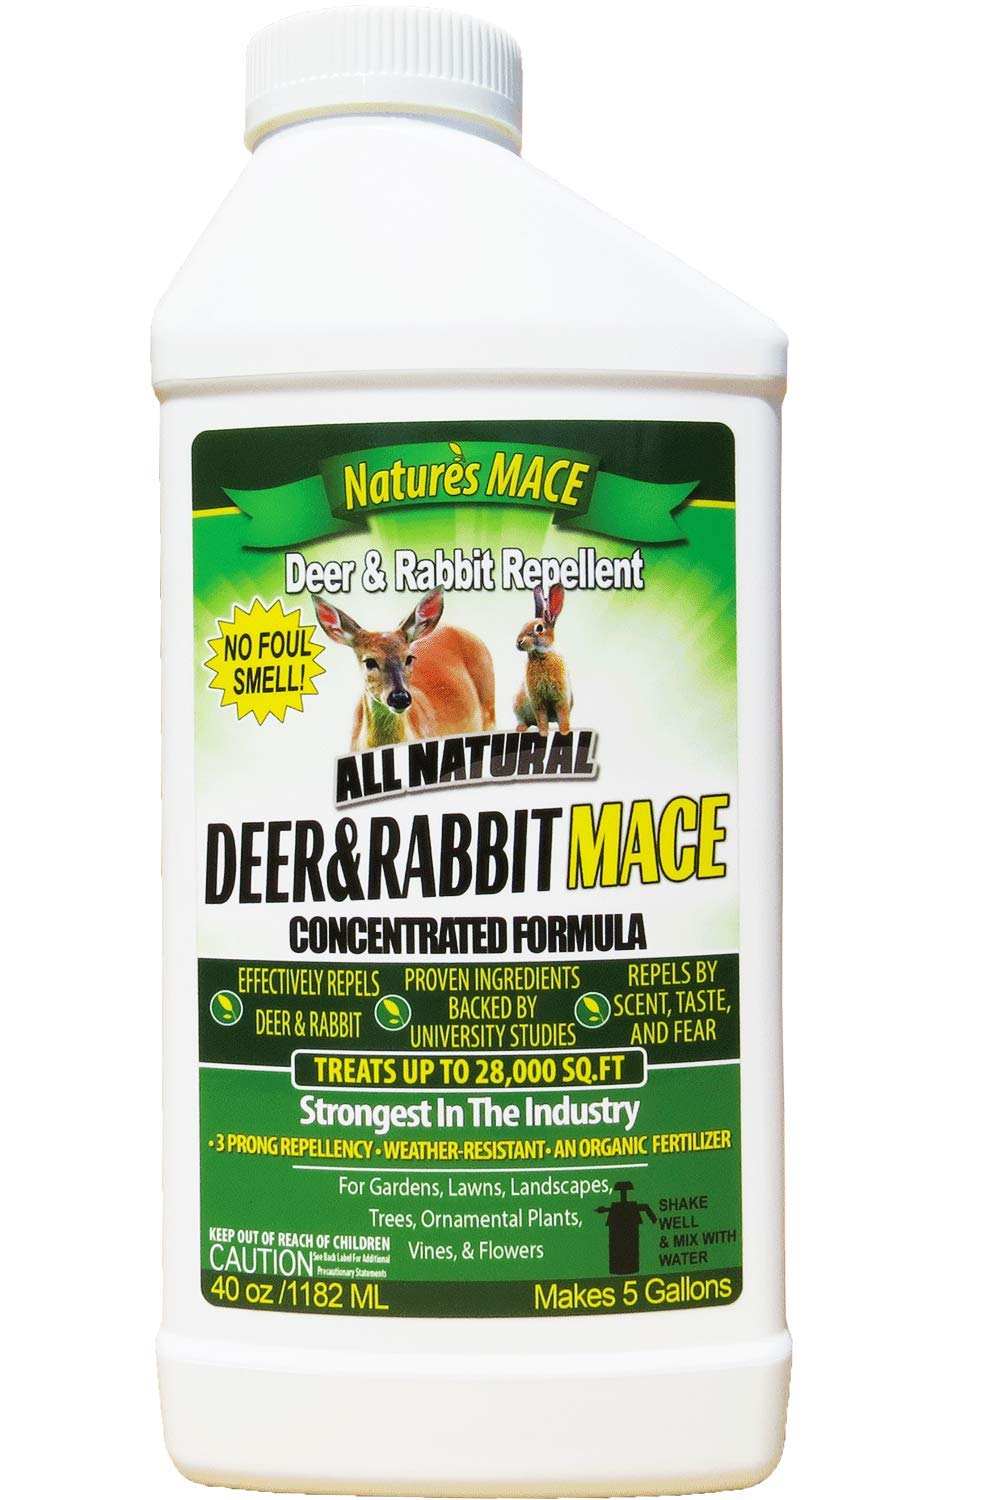 Nature's Mace Deer and Rabbit Repellent